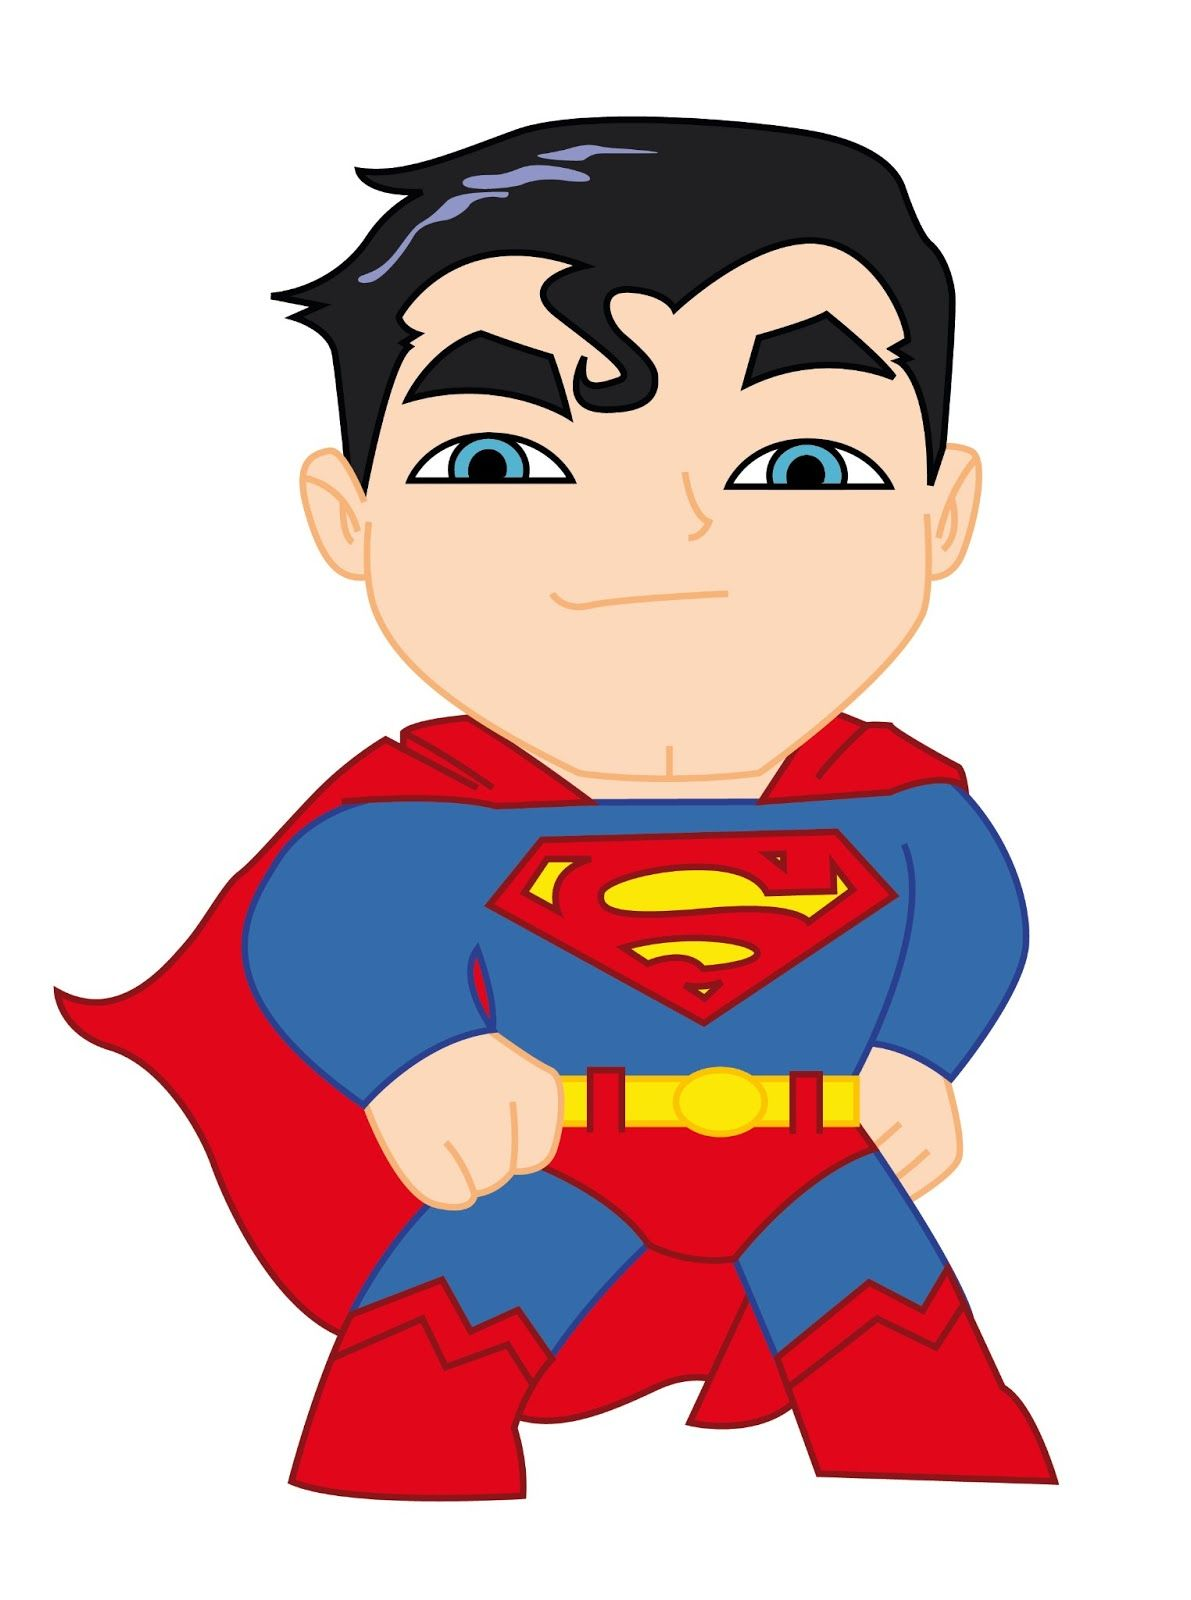 Avengers clipart justice league. Superman background cute chibi